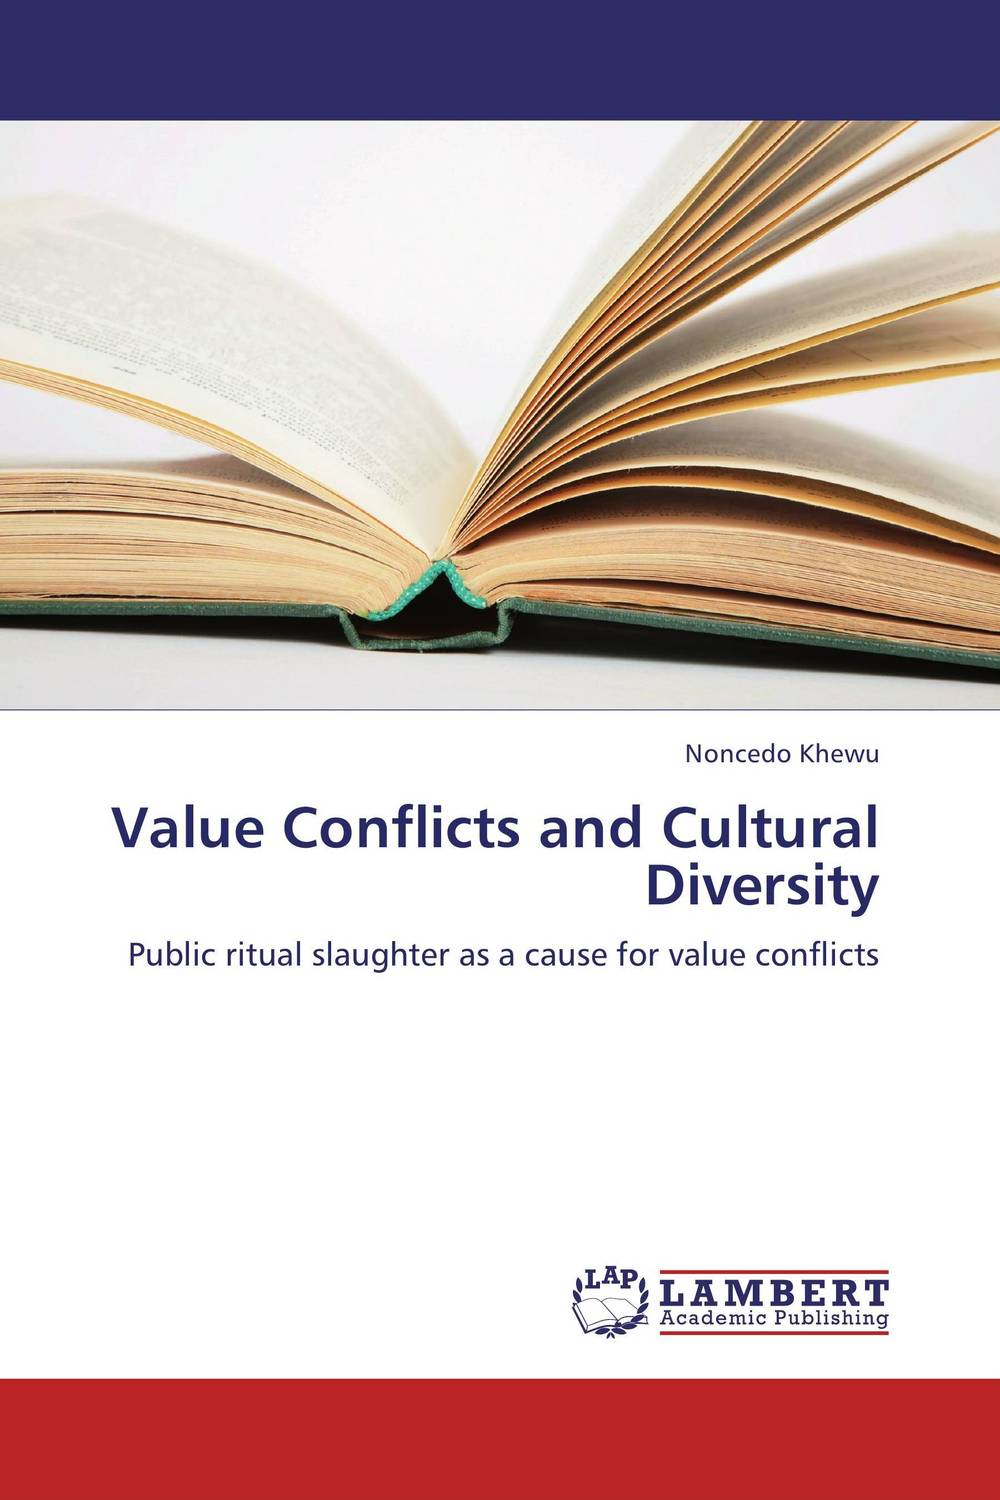 Value Conflicts and Cultural Diversity orality online and the promotion of cultural diversity